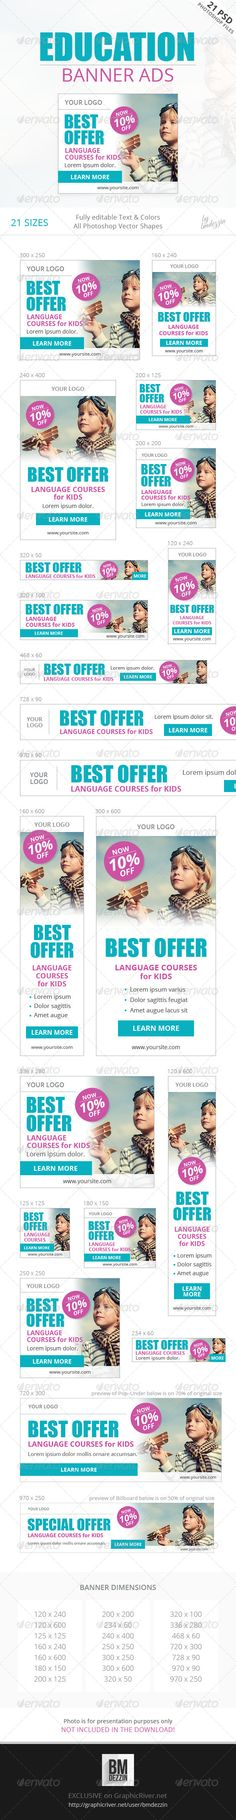 Education Banner Ads Template PSD | Buy and Download: http://graphicriver.net/item/education-banner-ads/8636938?WT.ac=category_thumb&WT.z_author=bmdezzin&ref=ksioks